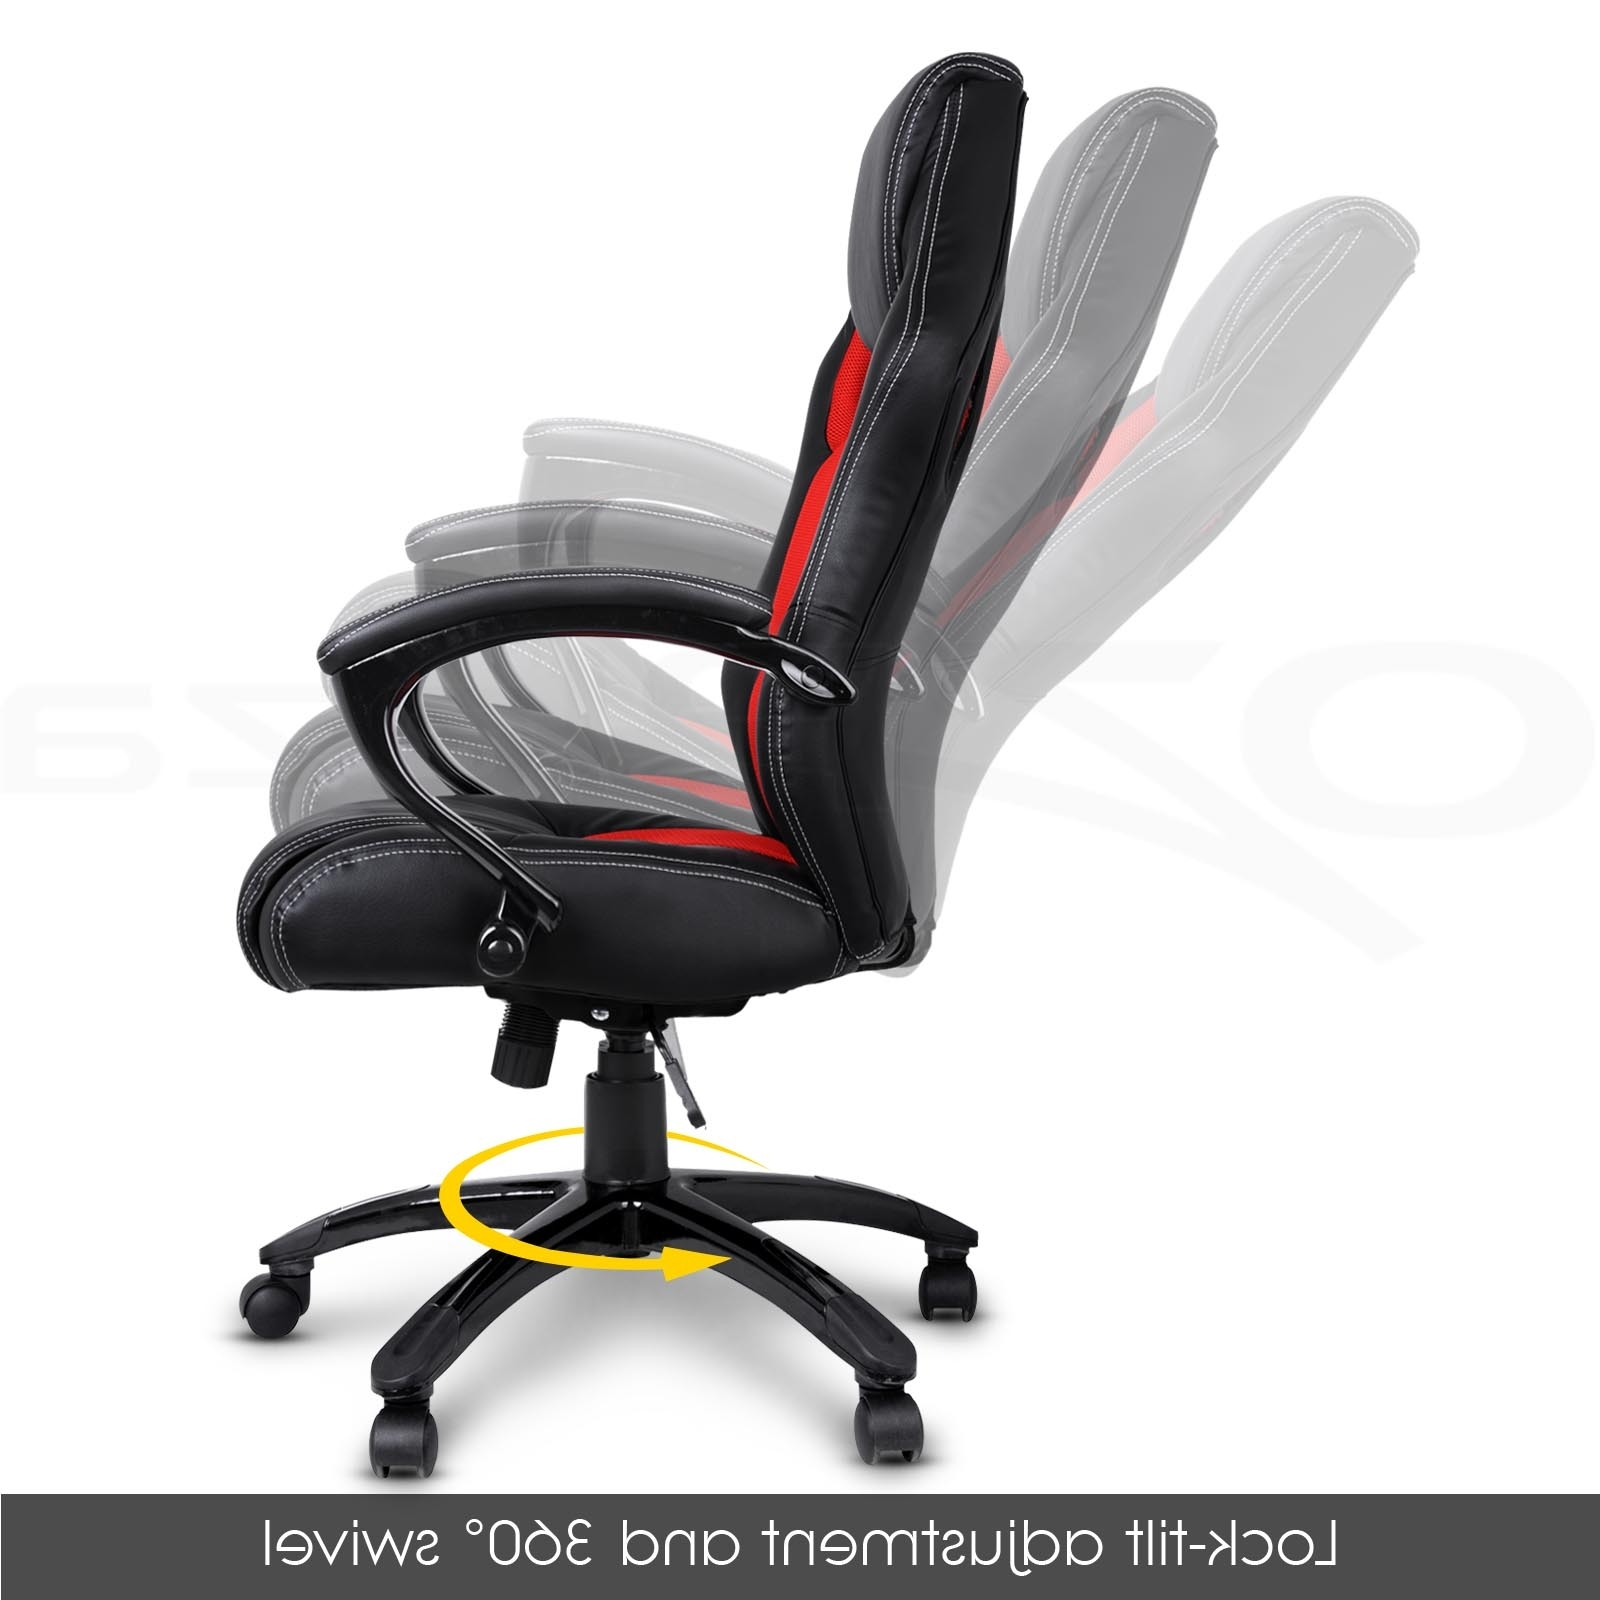 Executive Office Racing Chairs With Regard To Current Lovely Racing Seat Office Chair (12 Photos) (View 10 of 20)